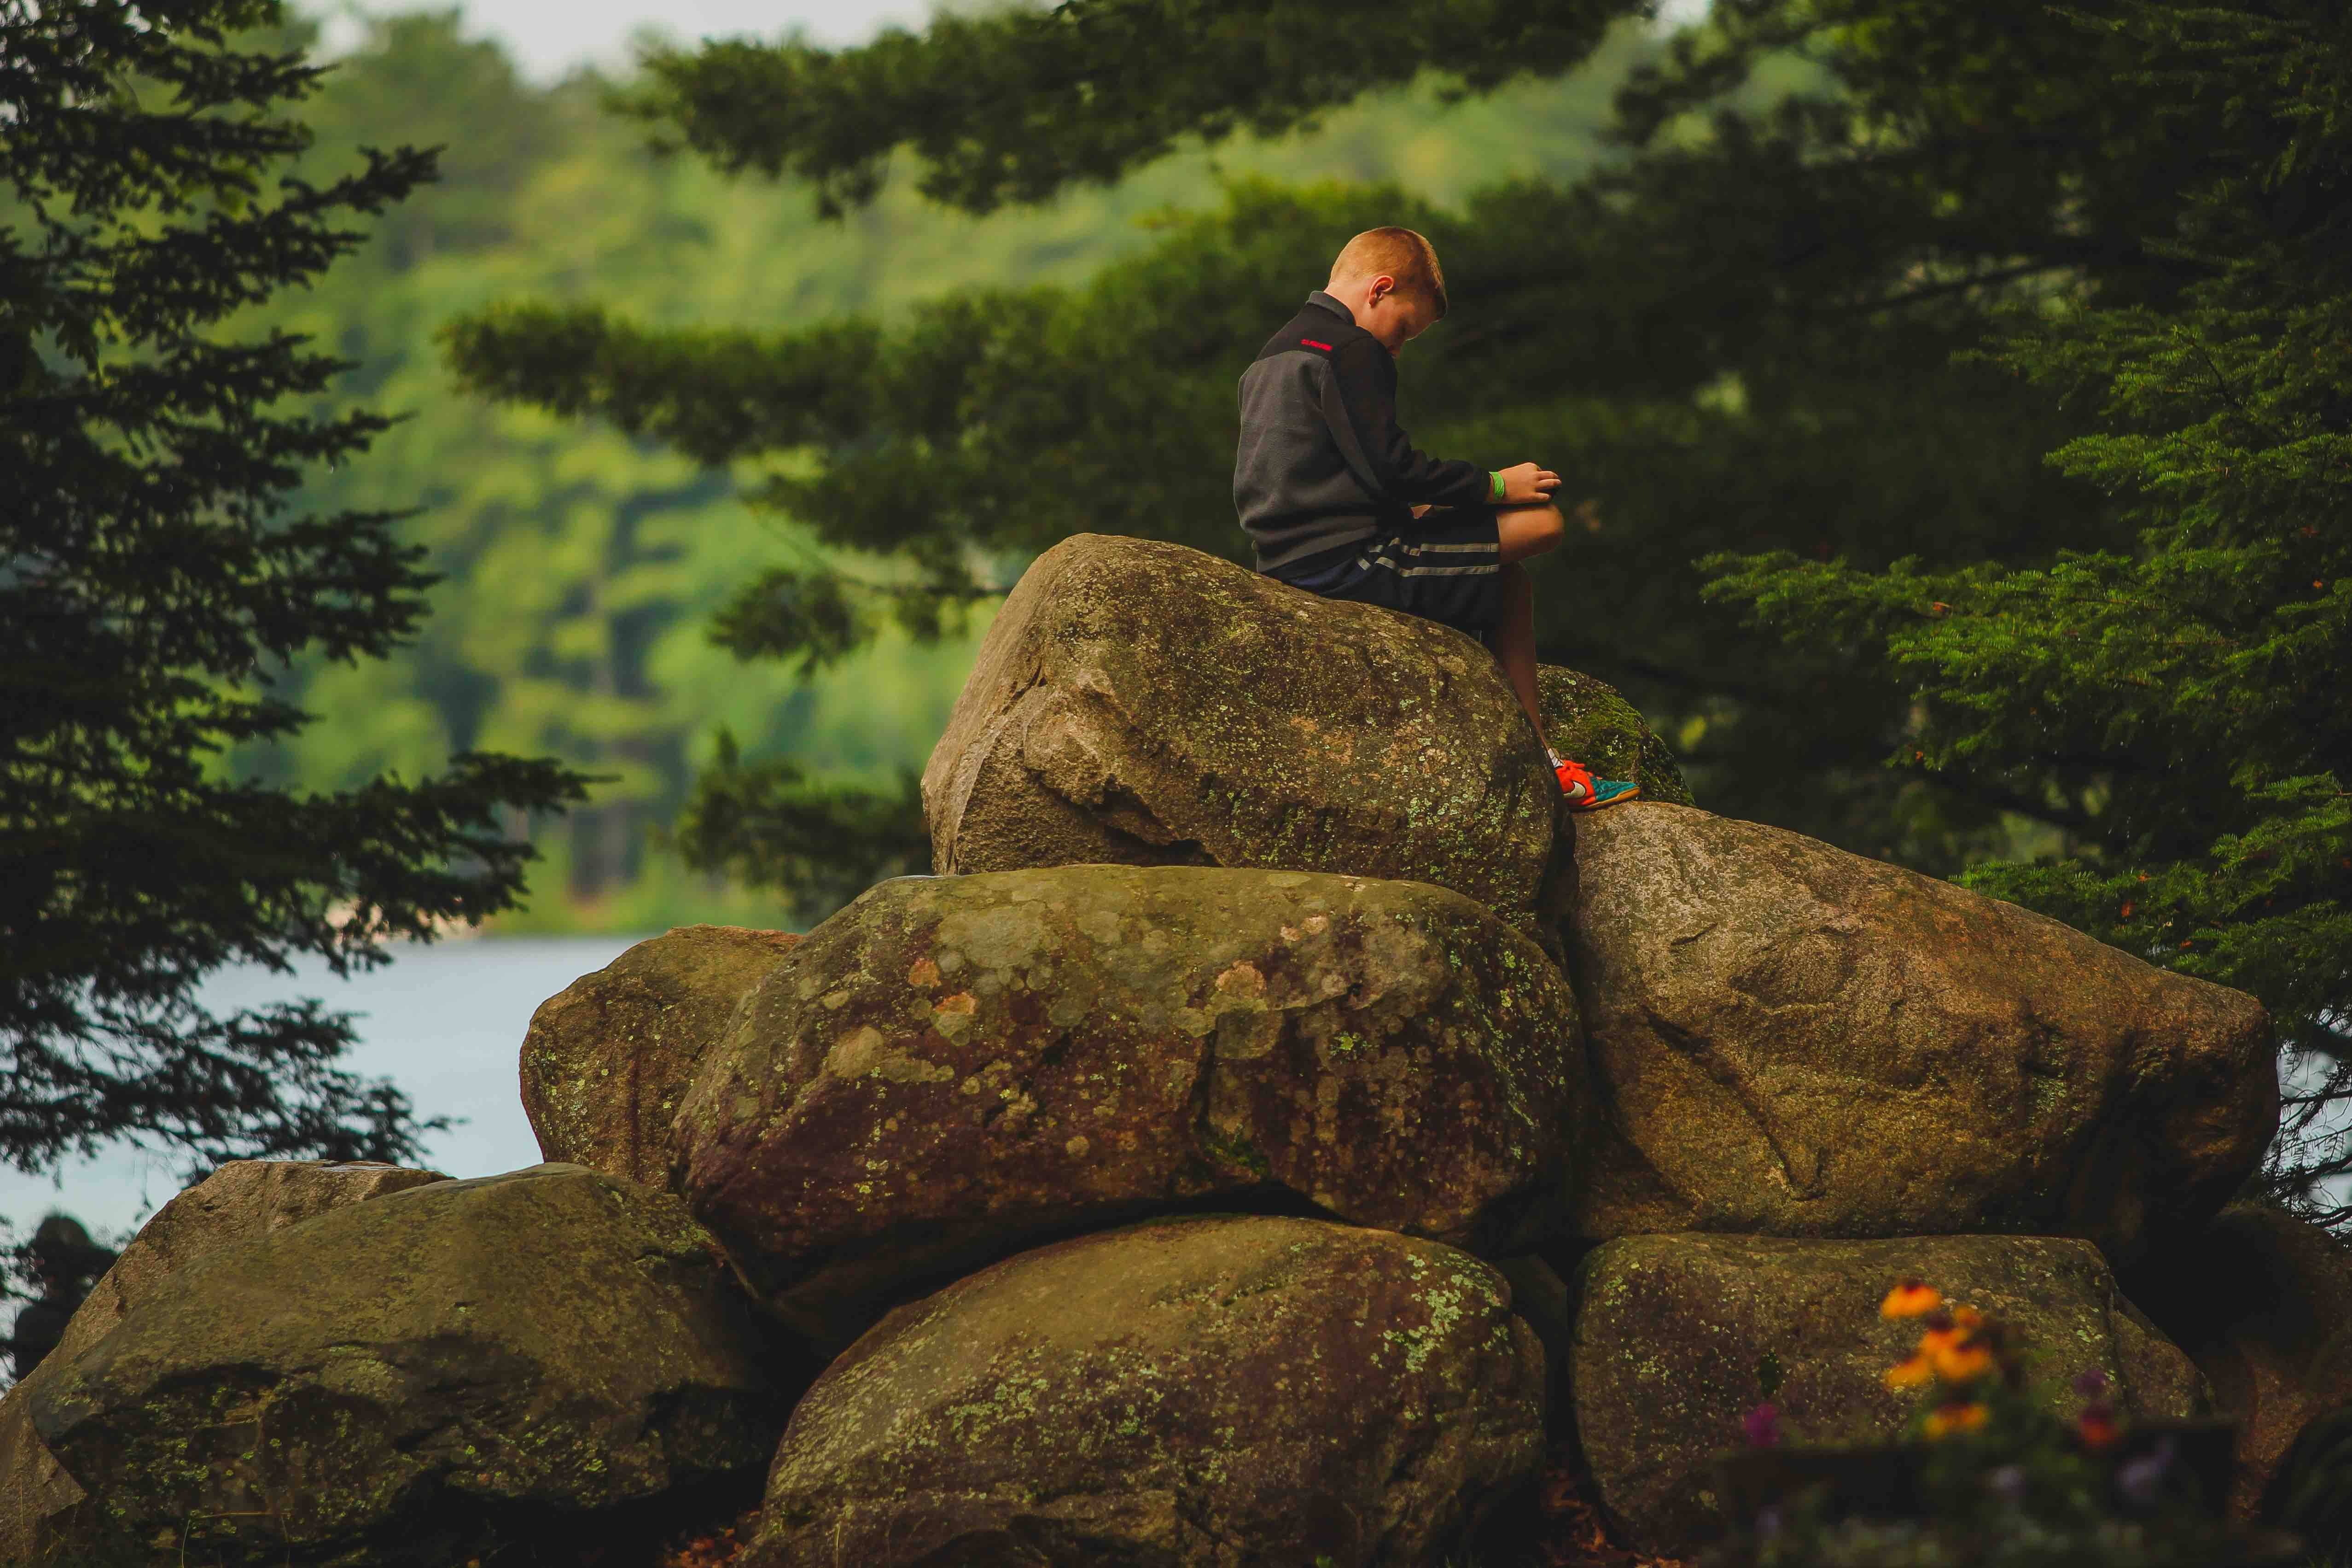 """Campers often find """"their spot"""" for this special time at HoneyRock. If you were here during Morning Watch, you'd see them spread out over Chrouser lawn, sitting next to a tree, or like this camper, ontop of one of the rock stacks!"""